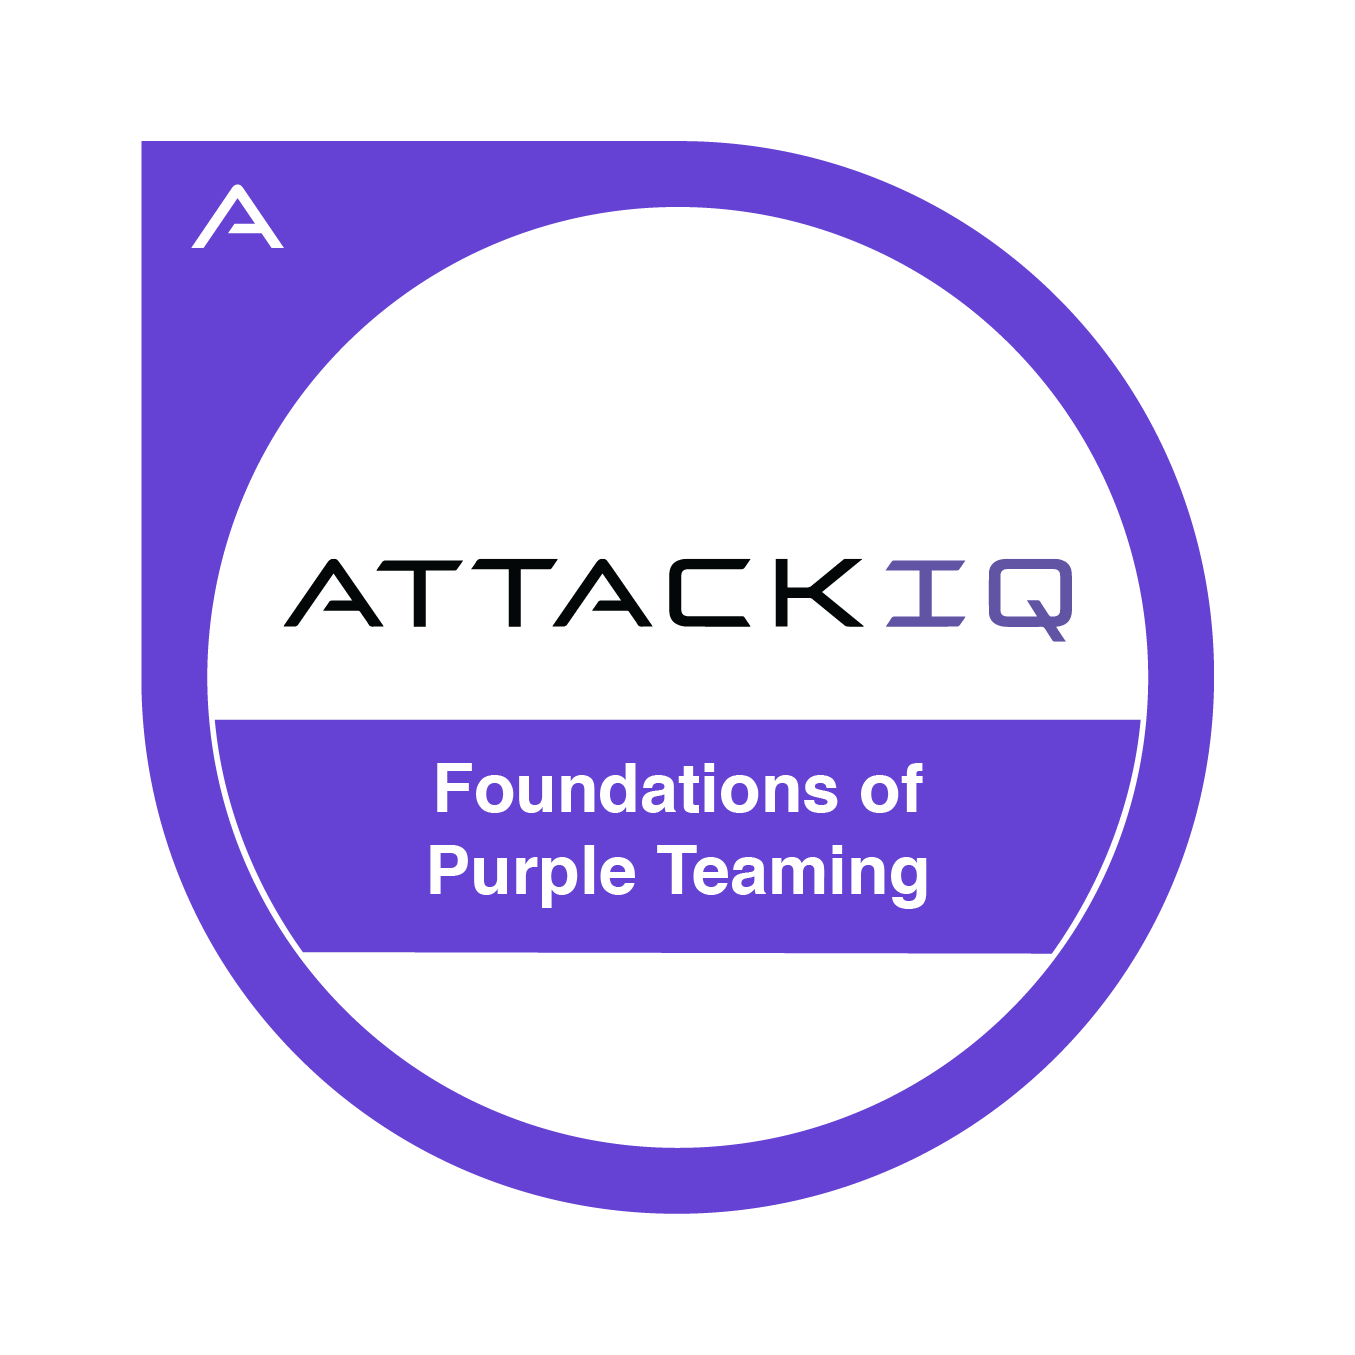 Foundations of Purple Teaming